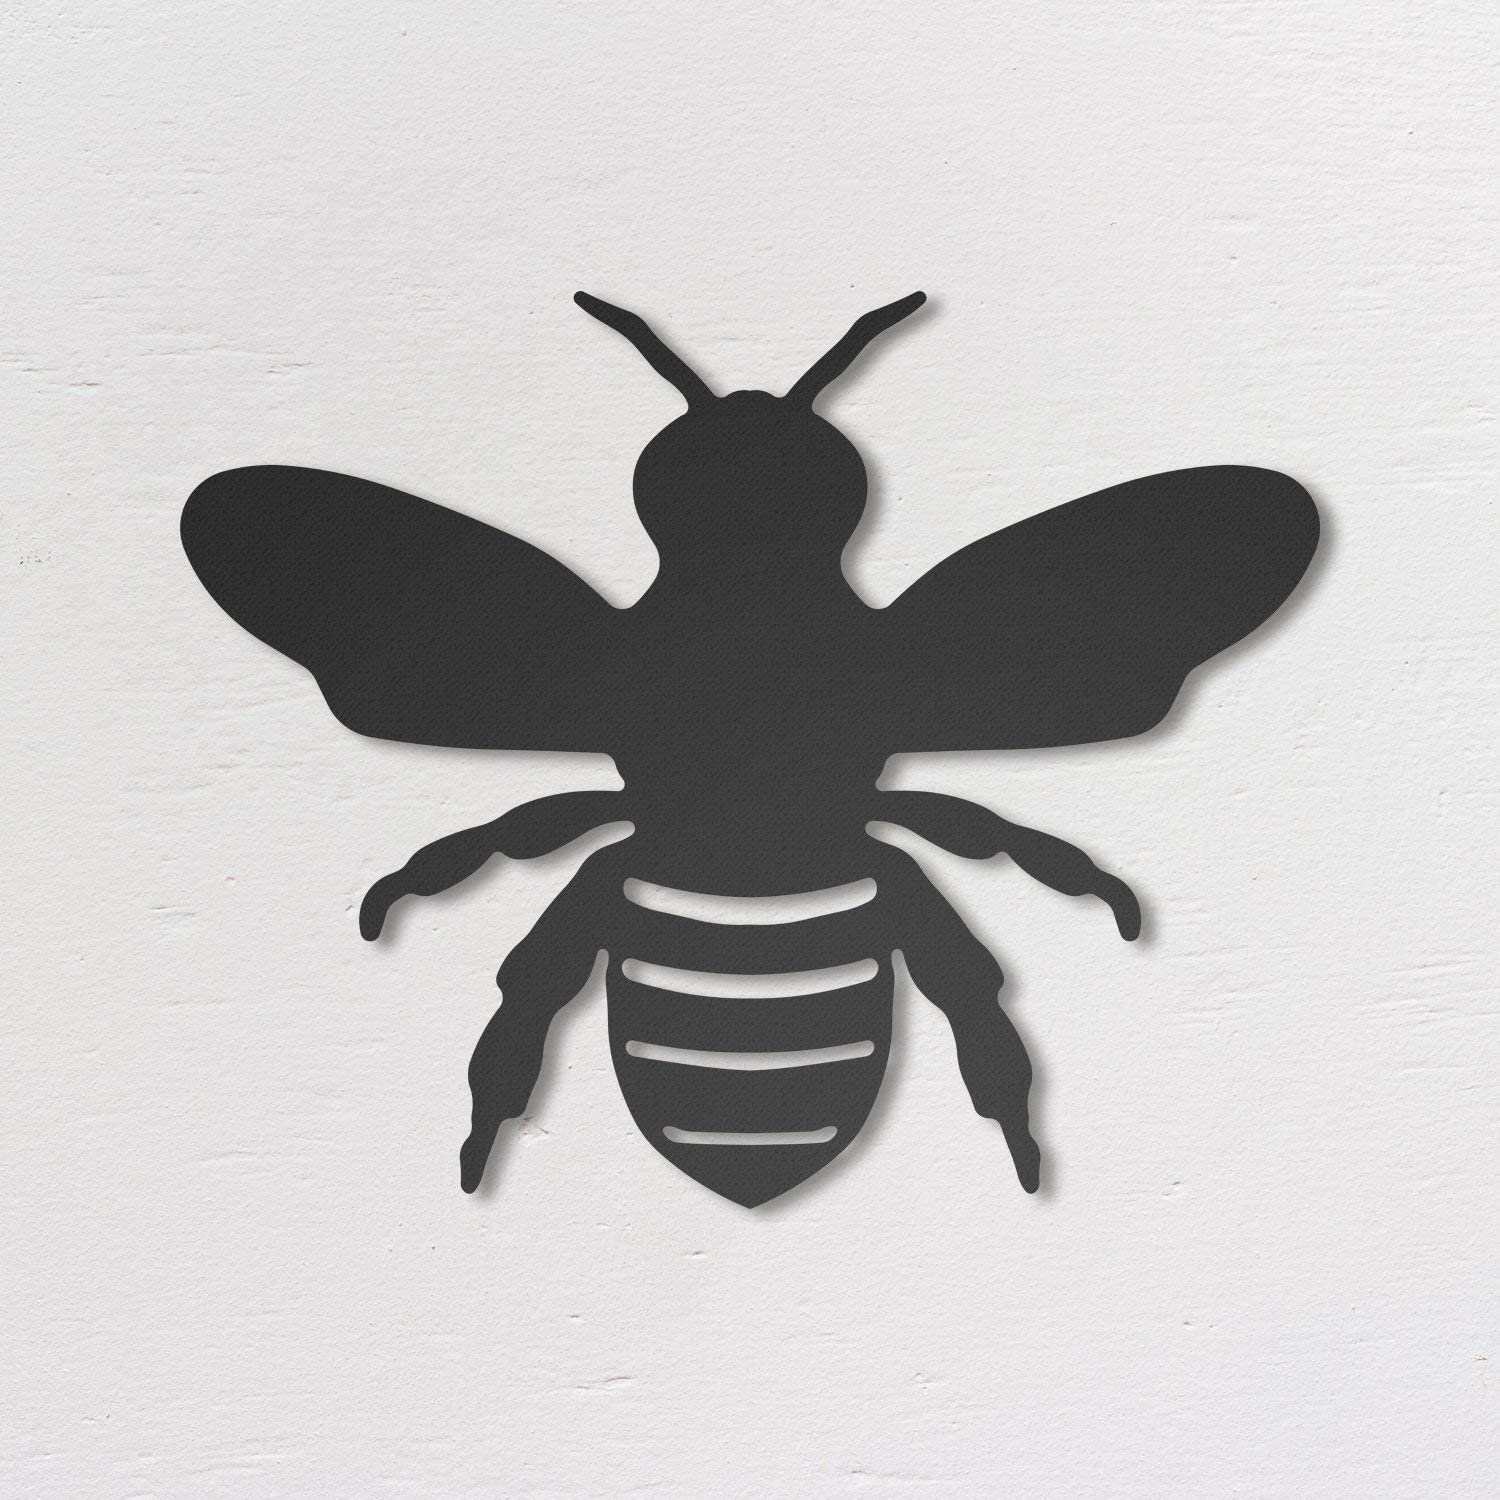 Northshire Metal Wall Decor, Bee Metal Wall art, Black Wall Decor Bathroom Decor, Bedroom Decor and Kitchen Wall Decor, Wall Decorations for Living Room